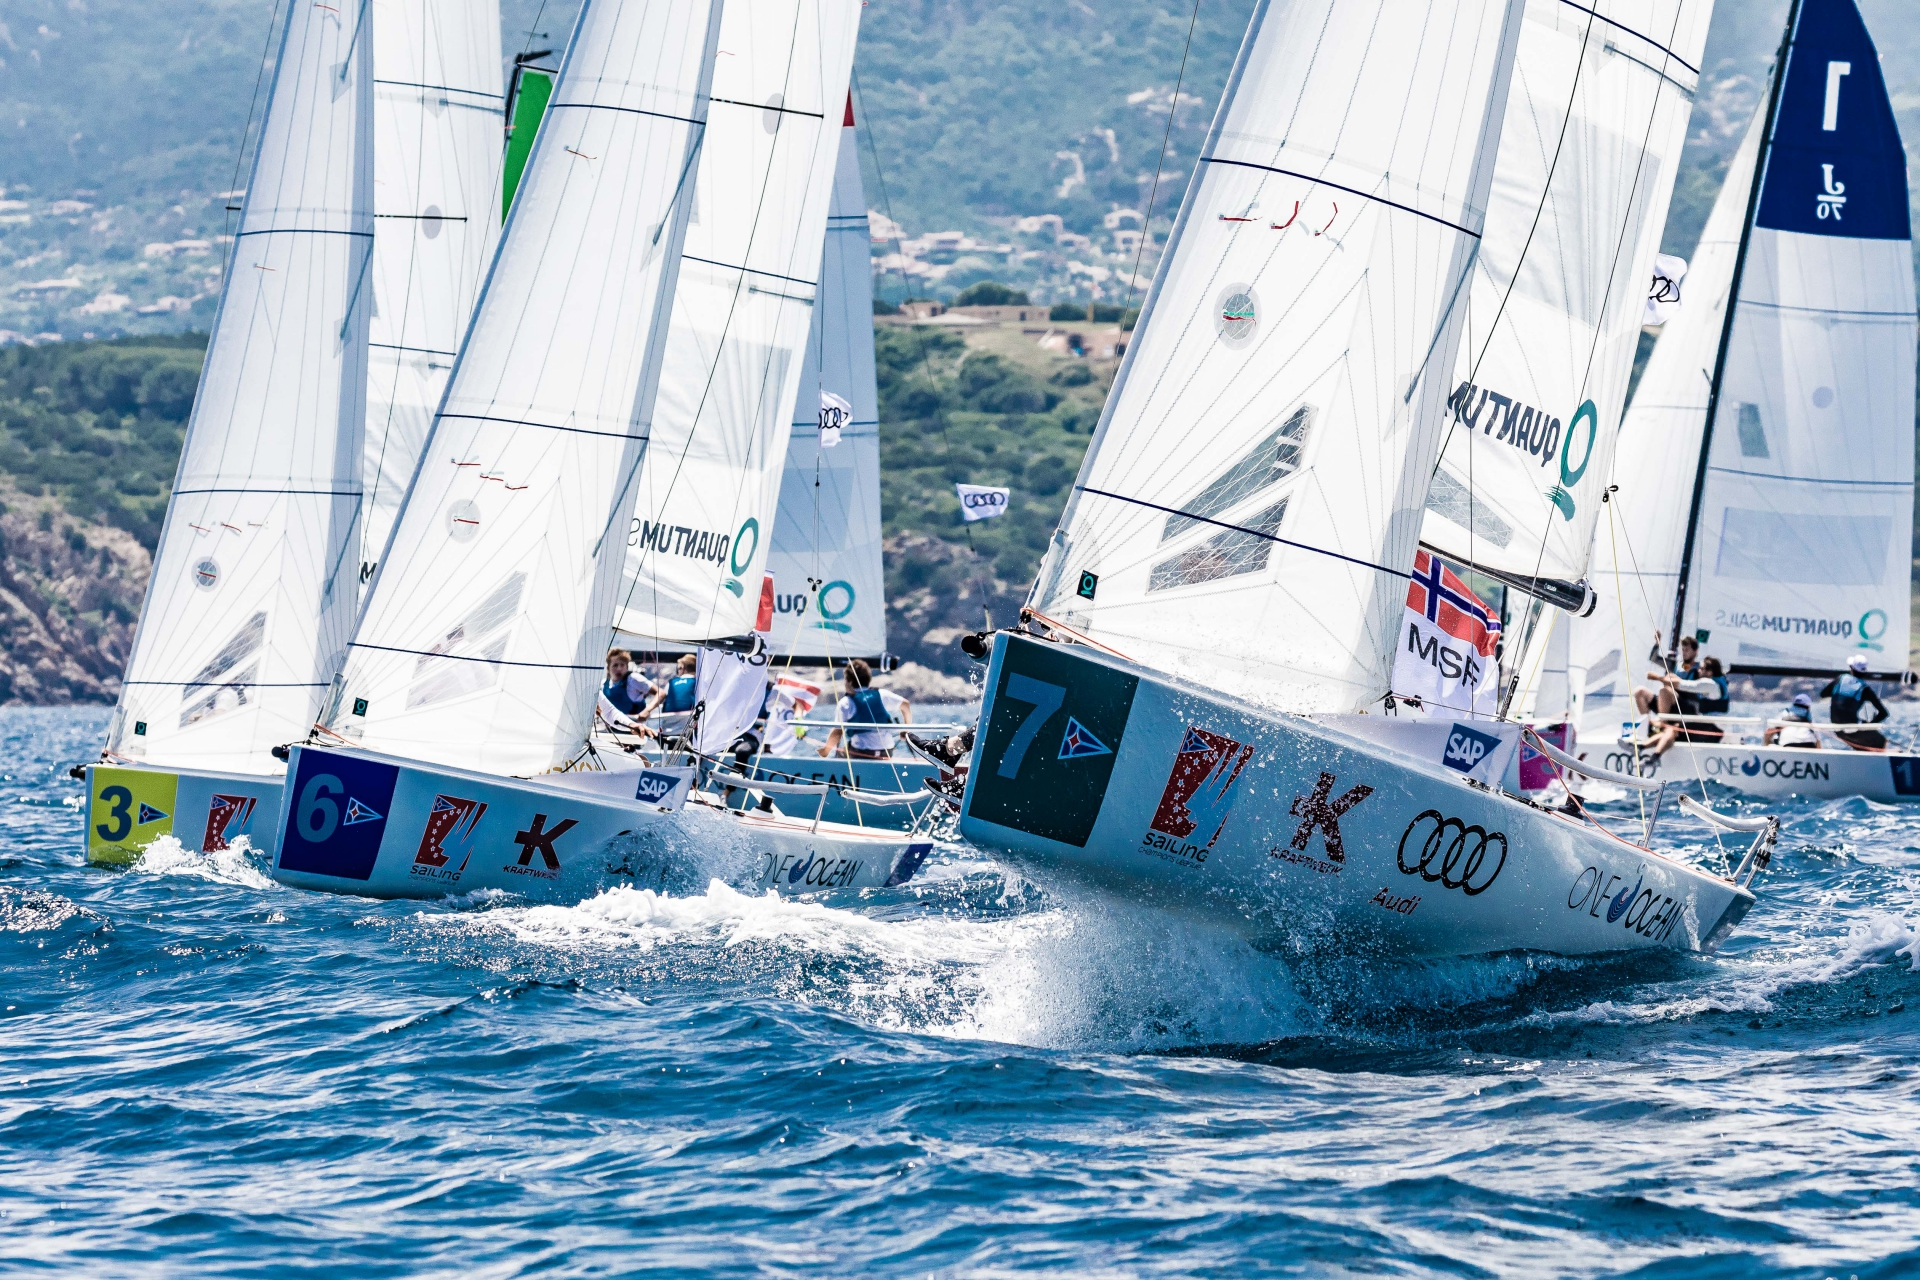 One Ocean SAILING Champions League al via domani  - NEWS - Yacht Club Costa Smeralda